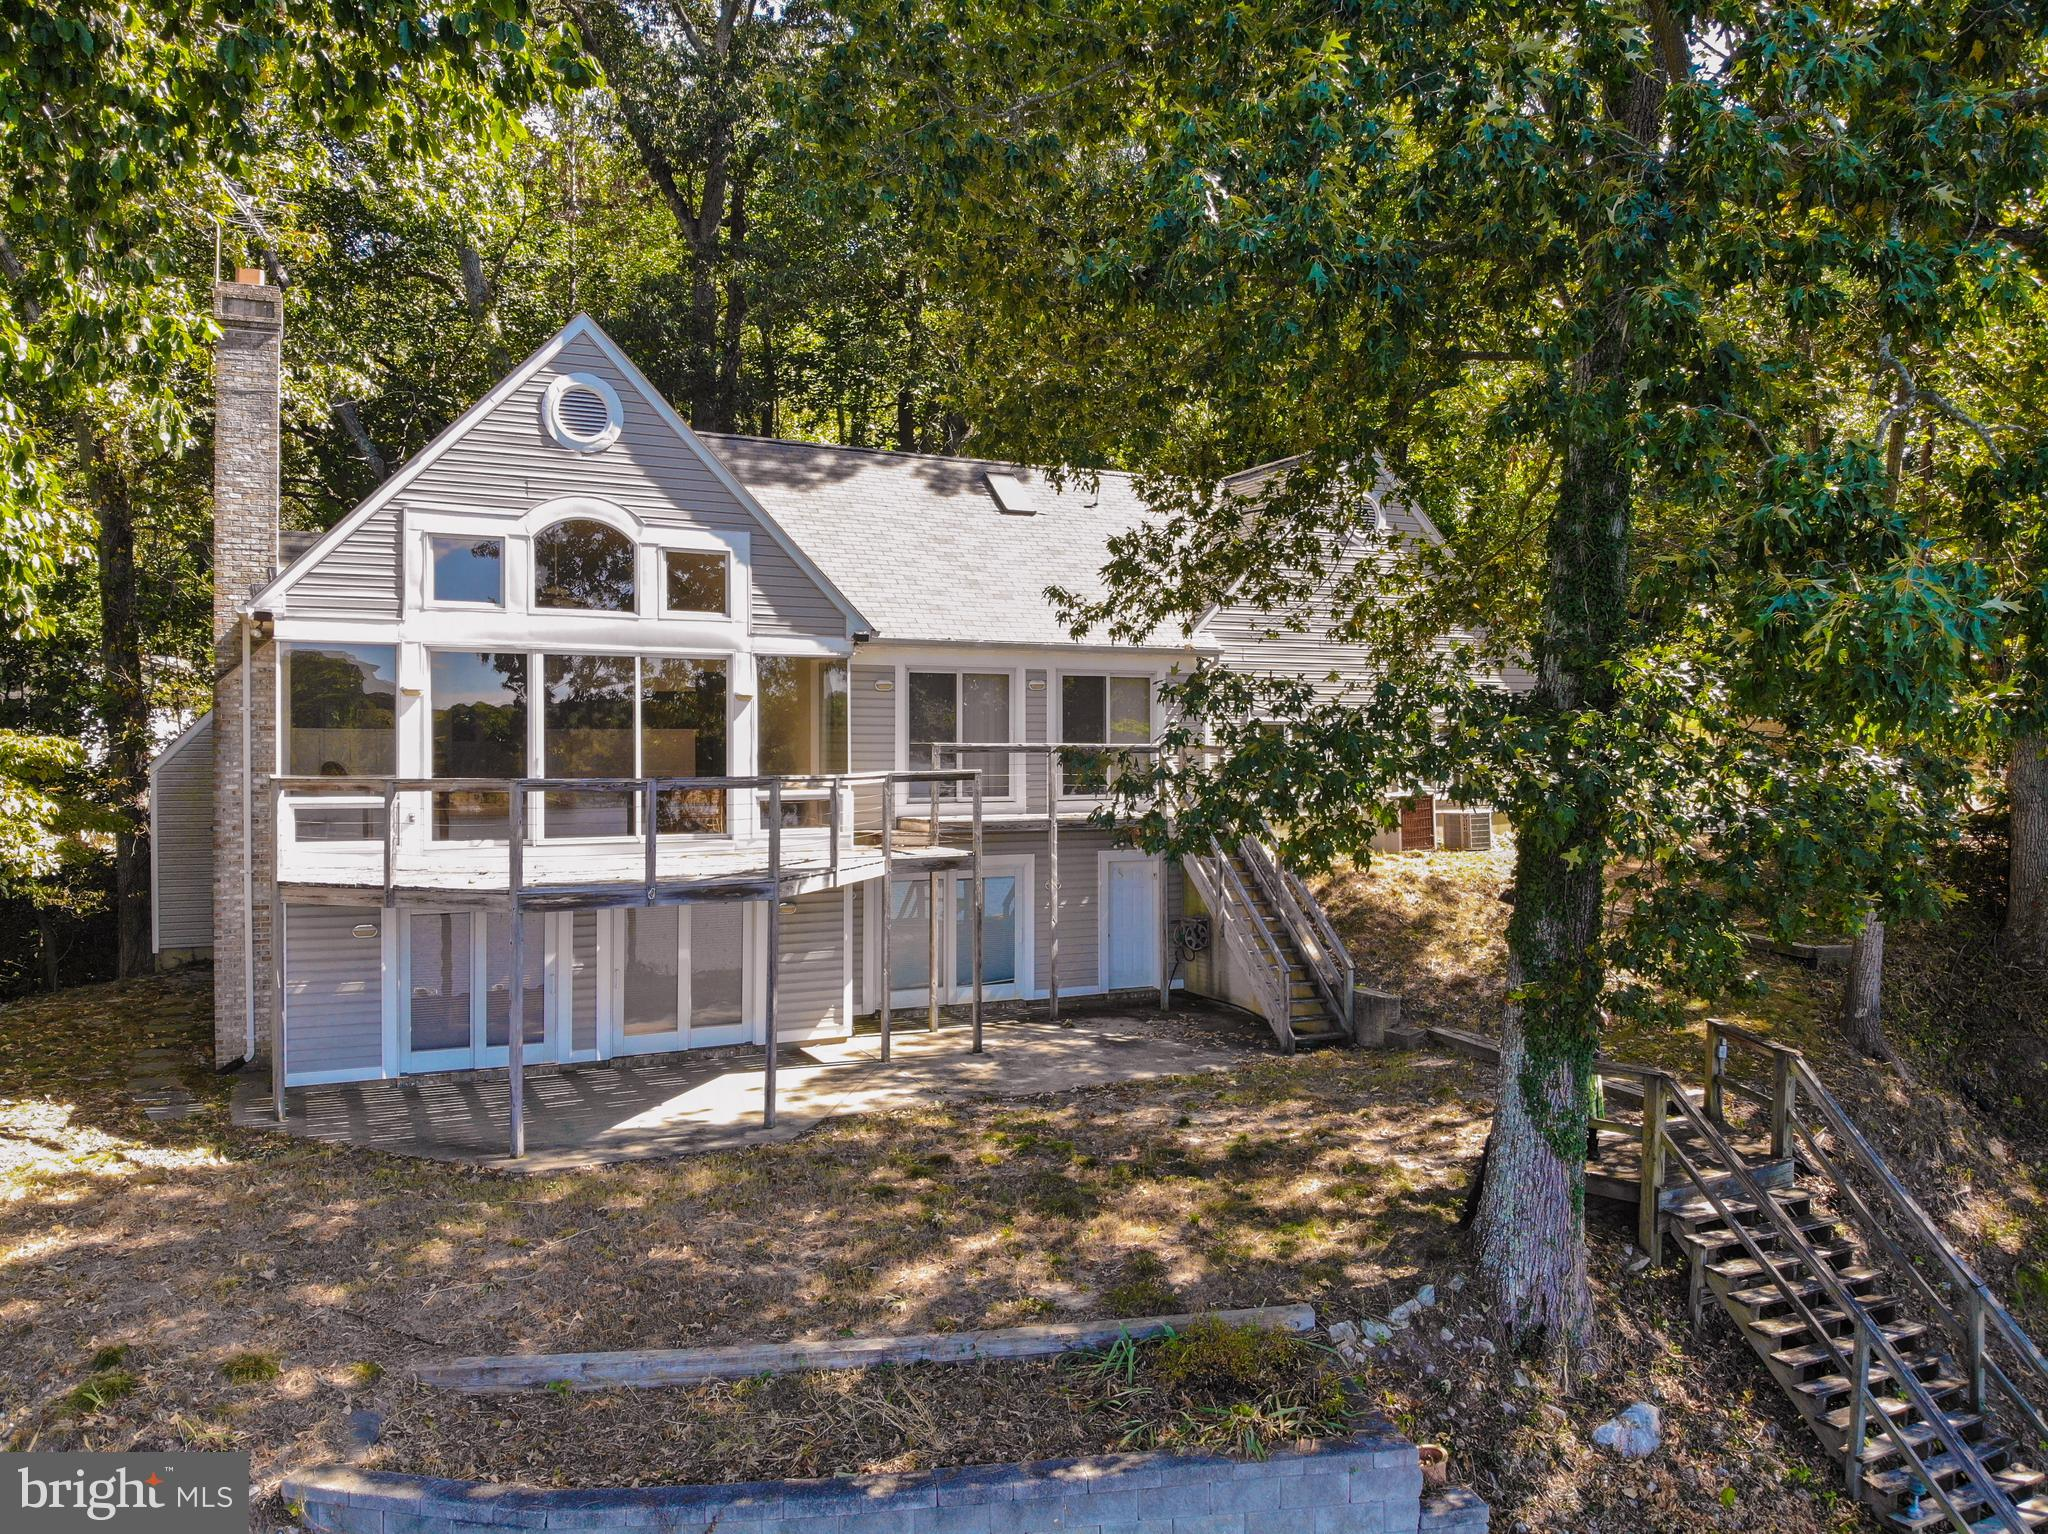 1215 STABLE LANE, LUSBY, MD 20657